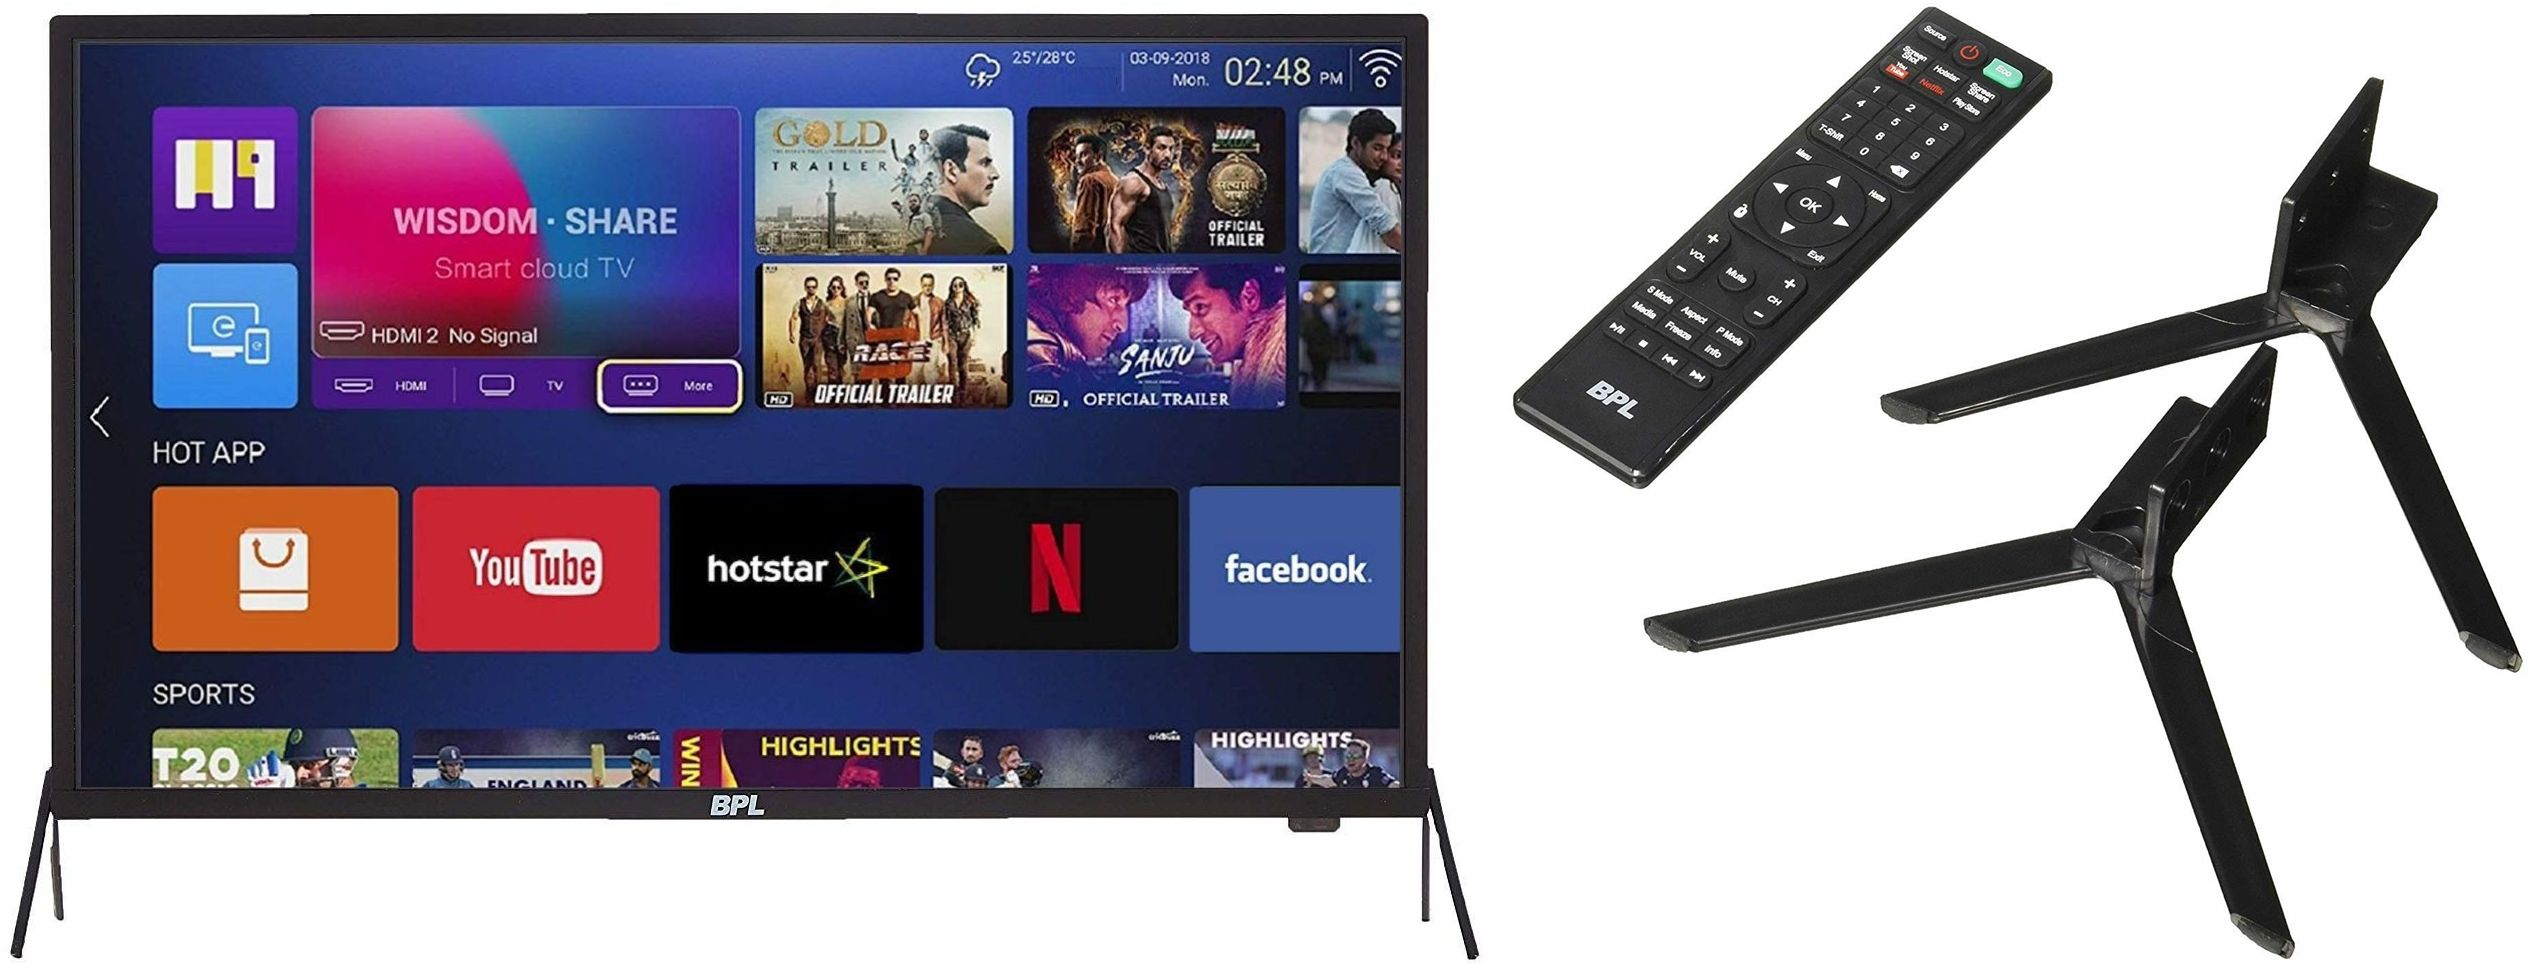 3 Best Big Screen LED TV under 18000 Rupees in India